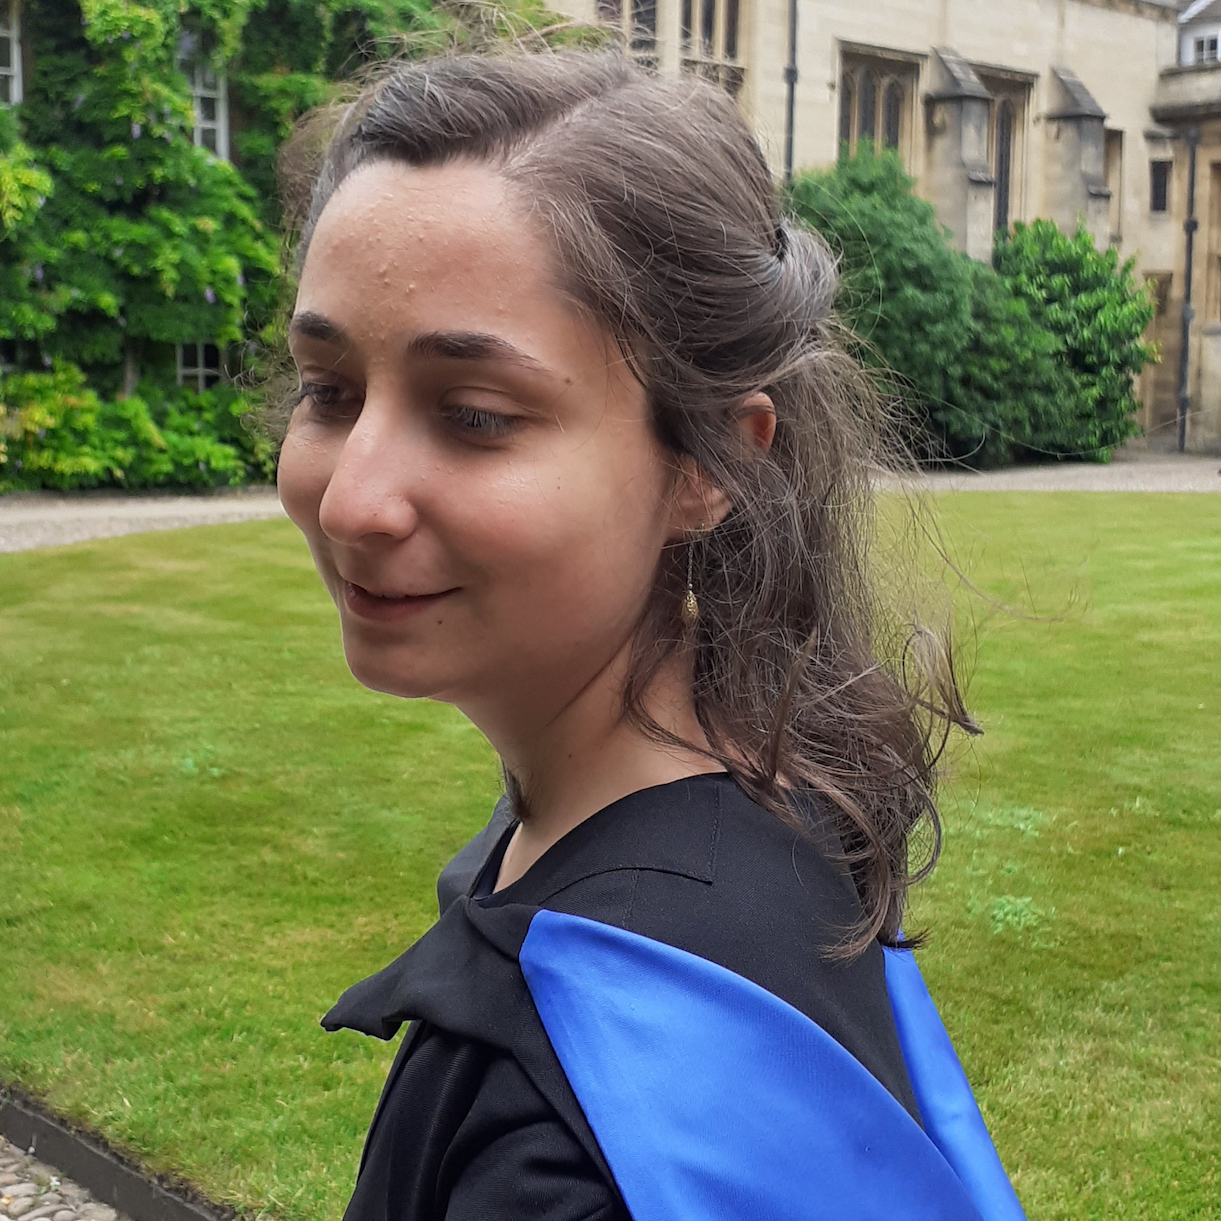 PhD student Clara Cuonzo, in profile, graduation robe visible on her shoulders, standing on a green field of grass at Cambridge University